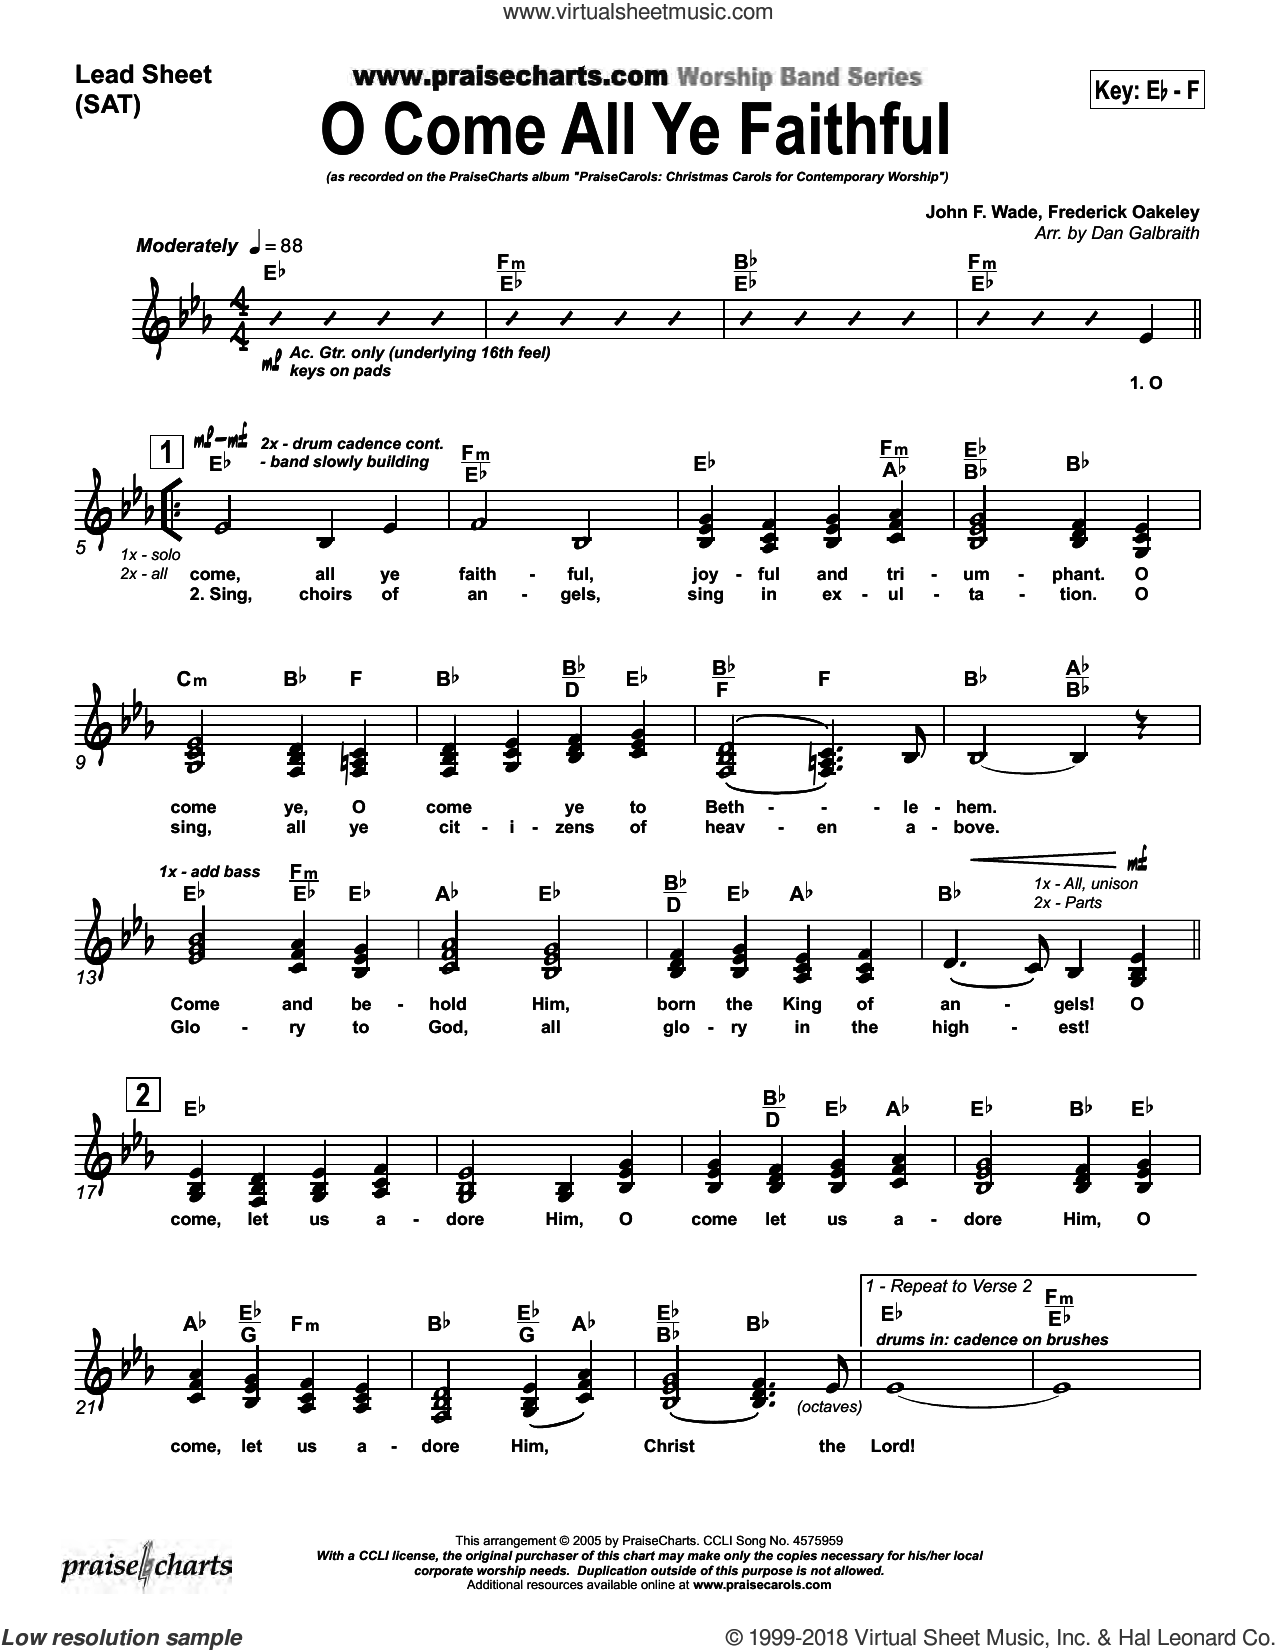 O Come All Ye Faithful sheet music for concert band (orchestration) by Dan Galbraith and Frederick Oakeley/John Wade, intermediate skill level